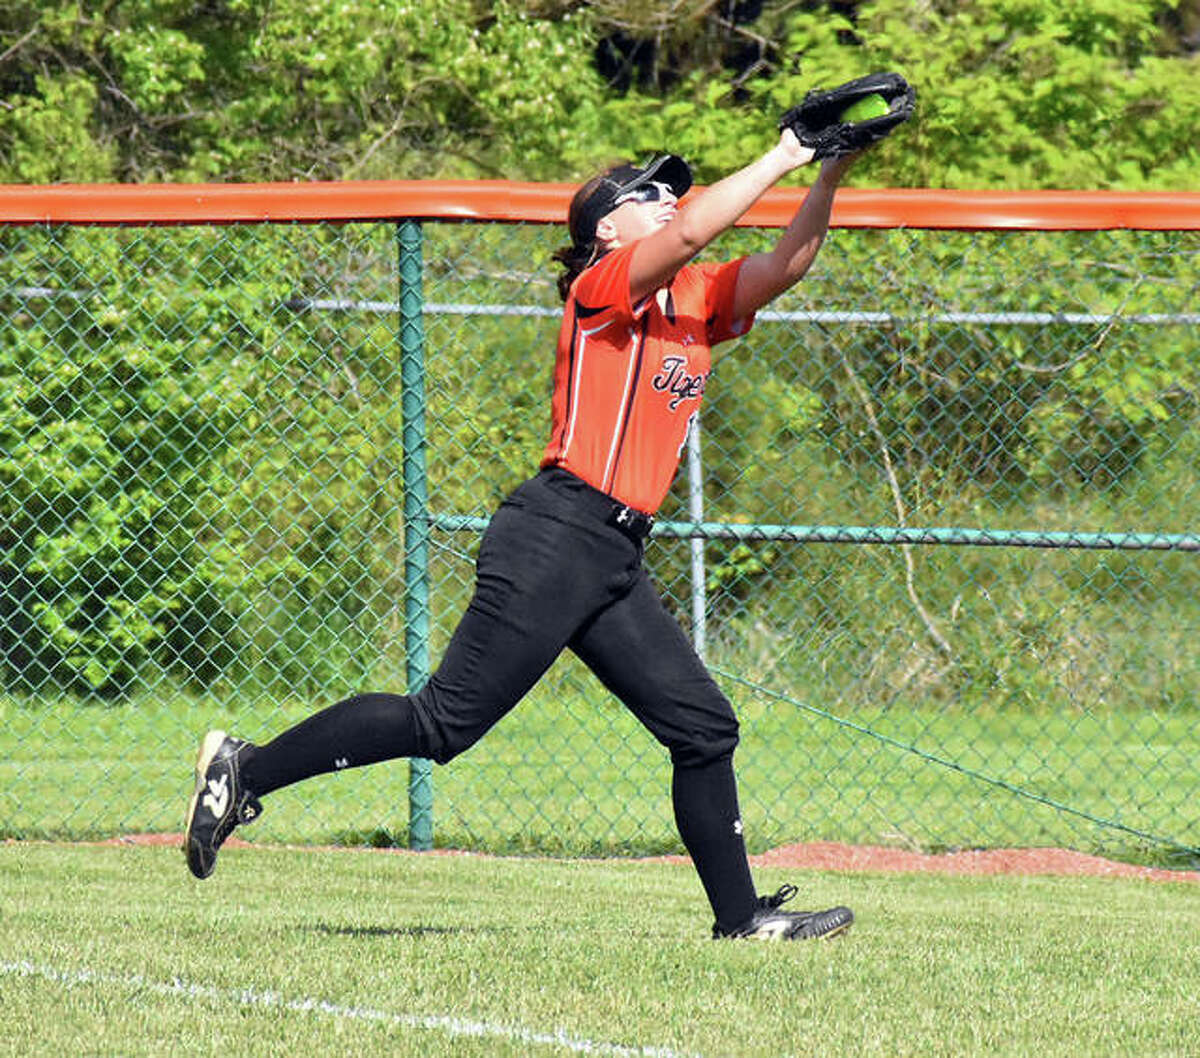 Edwardsville's Sydney Lawrence makes a running catch in foul territory in the first inning against Belleville East on Thursday inside the District 7 Sports Complex.